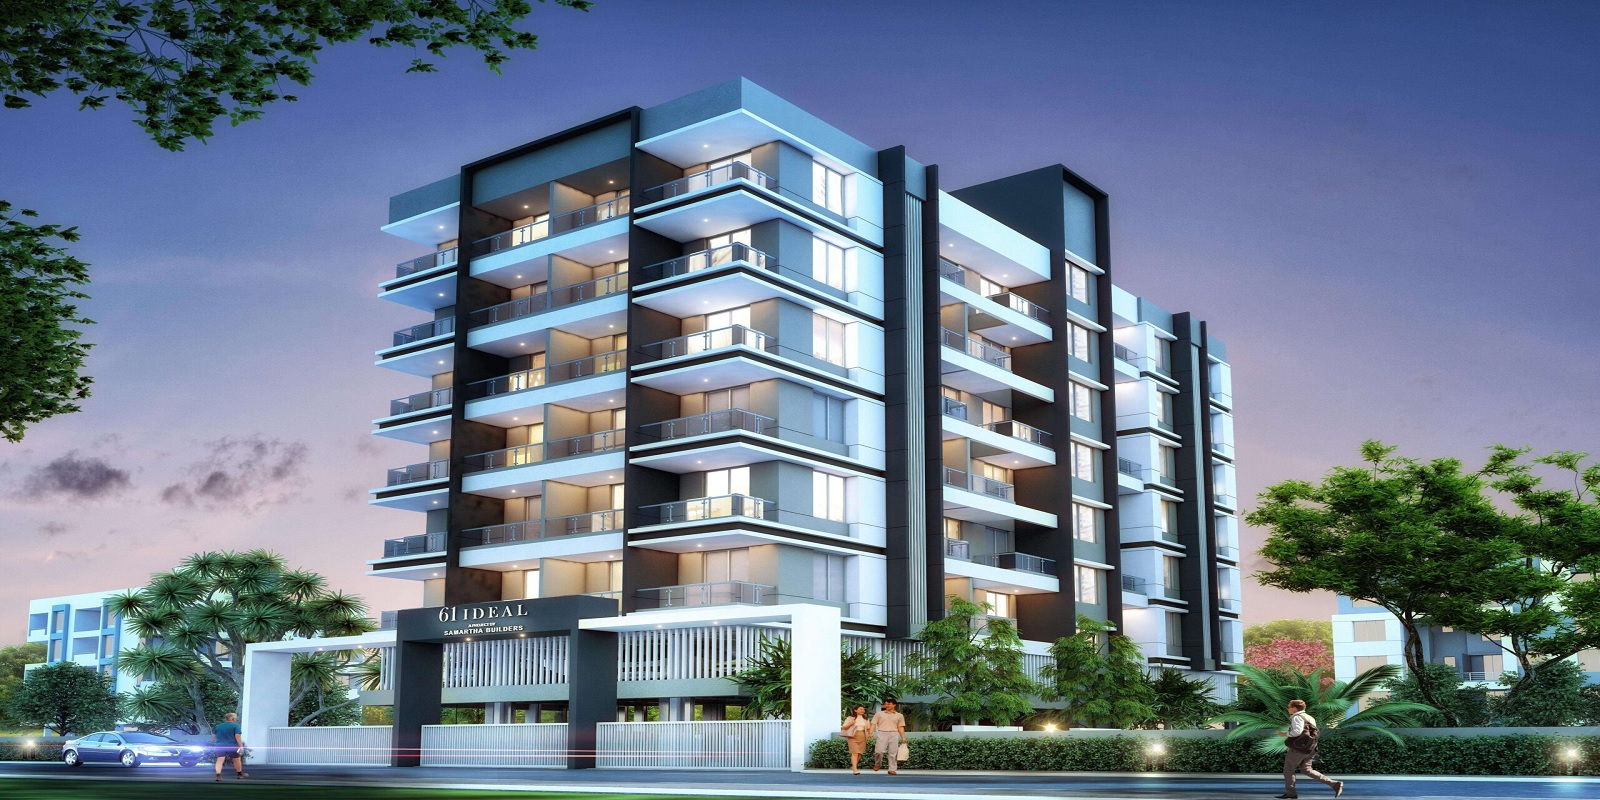 samarth 61 ideal project project large image1